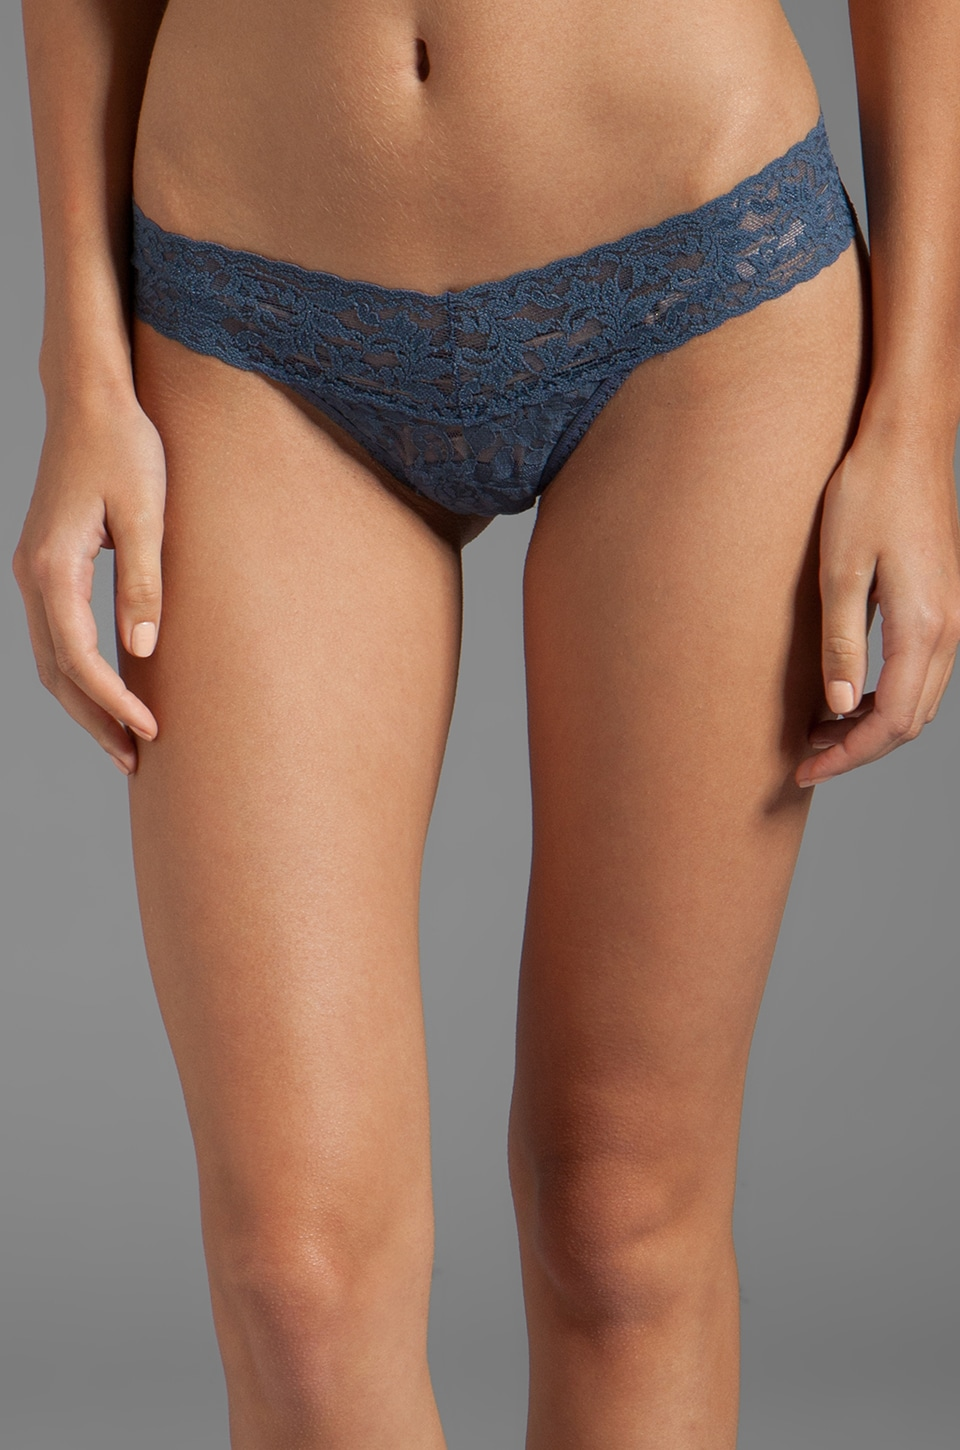 Hanky Panky Petite Low Rise Thong in Nightshadow